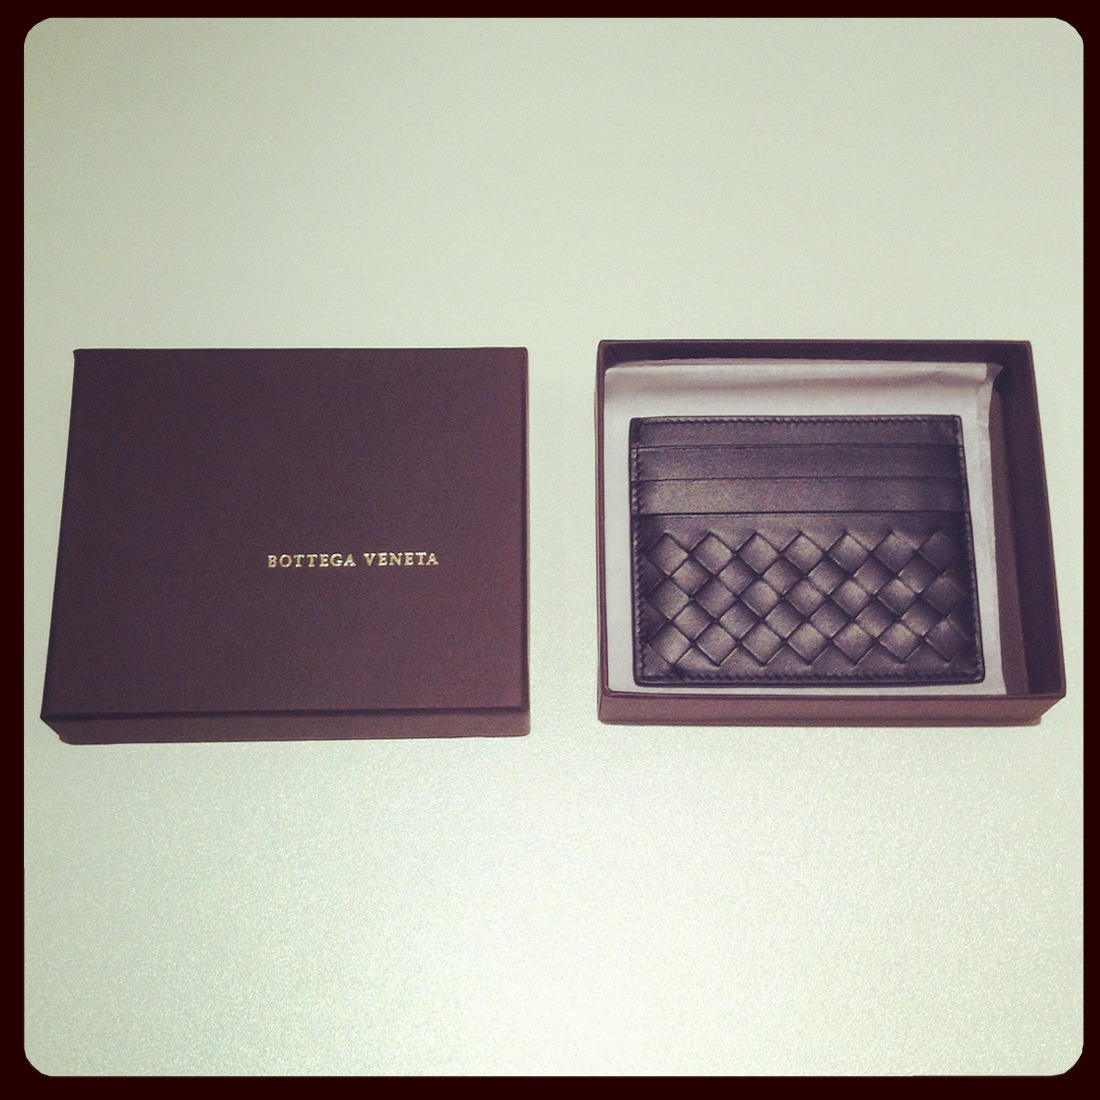 Our Sunday fix? Bottega Veneta's Intrecciato leather cardholder. BUY at: http://bit.ly/SUZdNx or SHOP all cardholders at: http://bit.ly/Uw9rHl